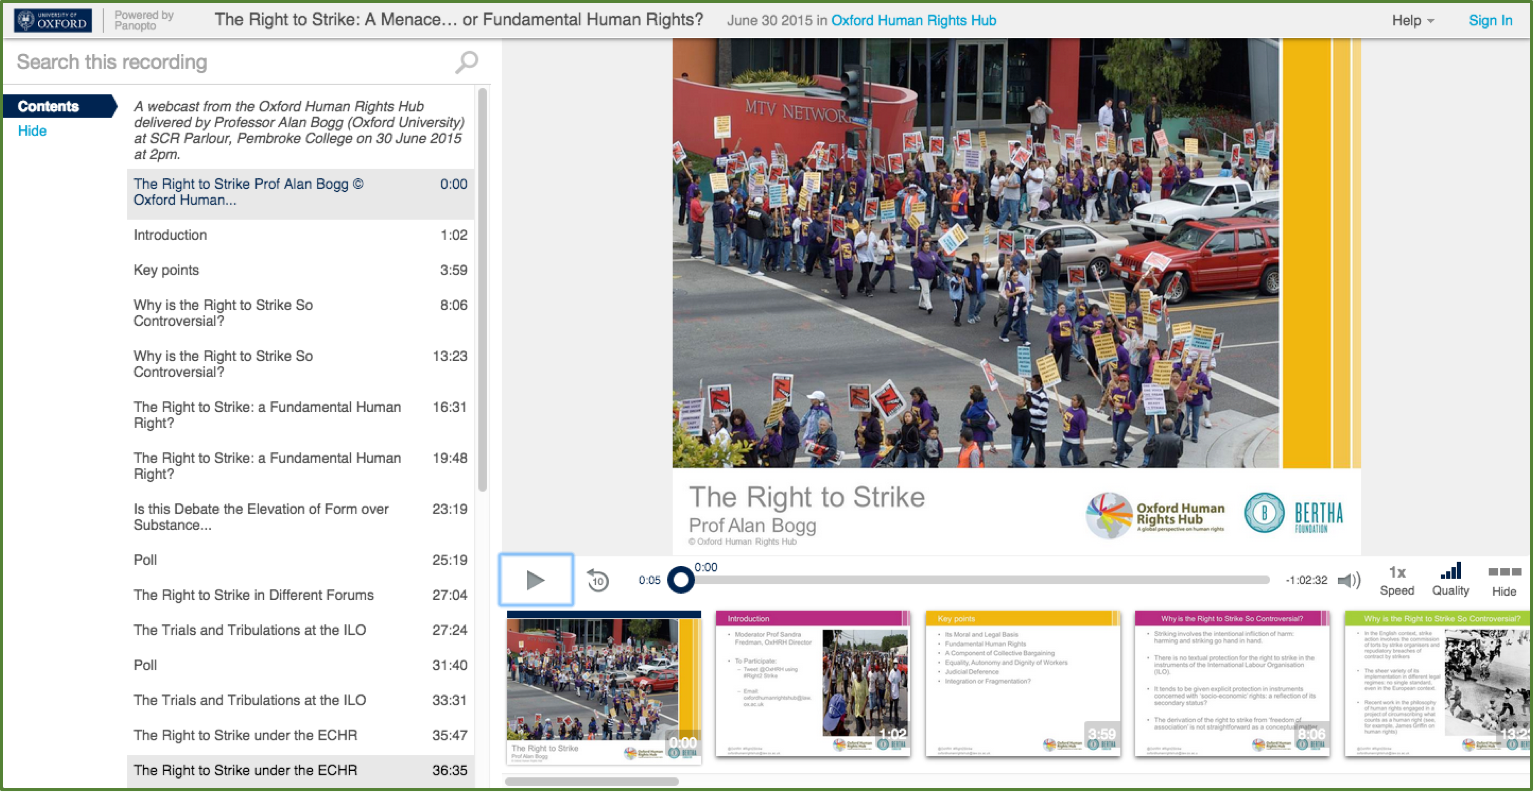 The Right to Strike - Panopto Video Presentation Platform